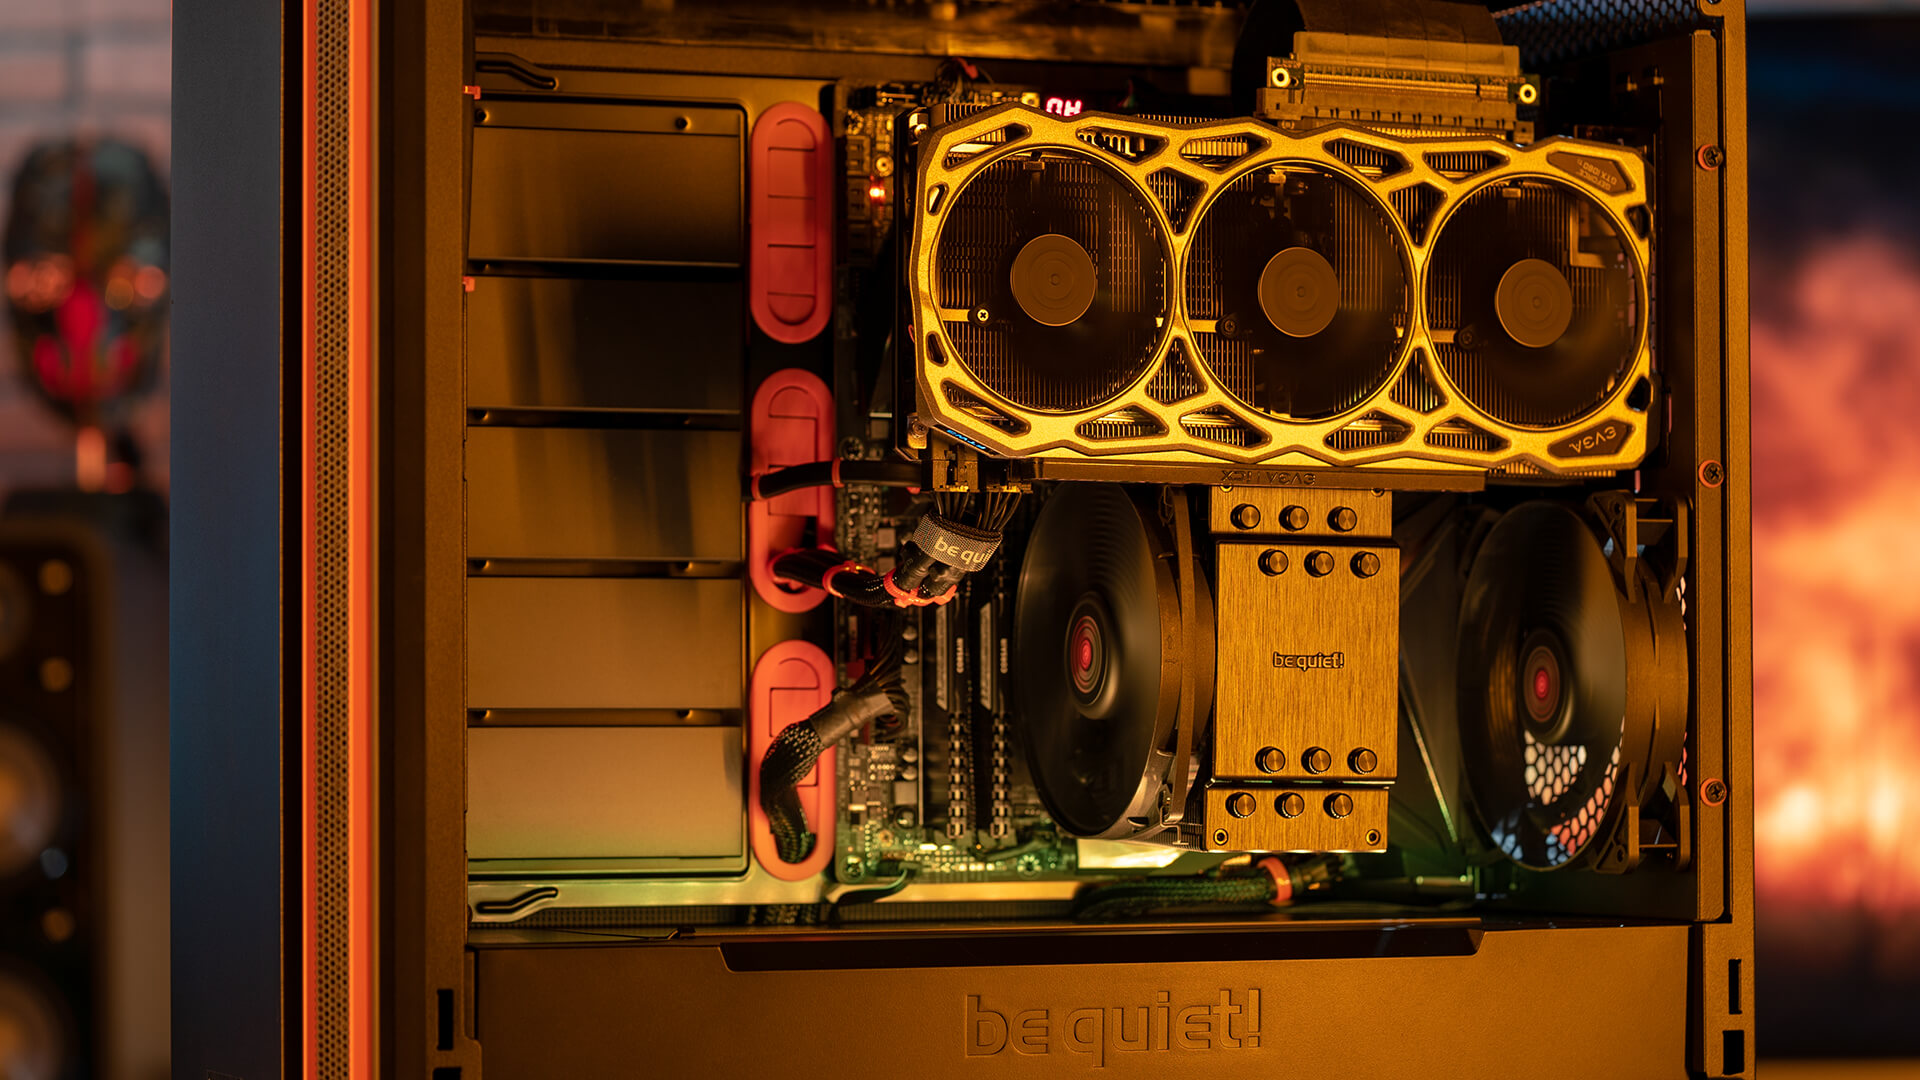 We've teamed up with BeQuiet! to build a performance gaming PC with some